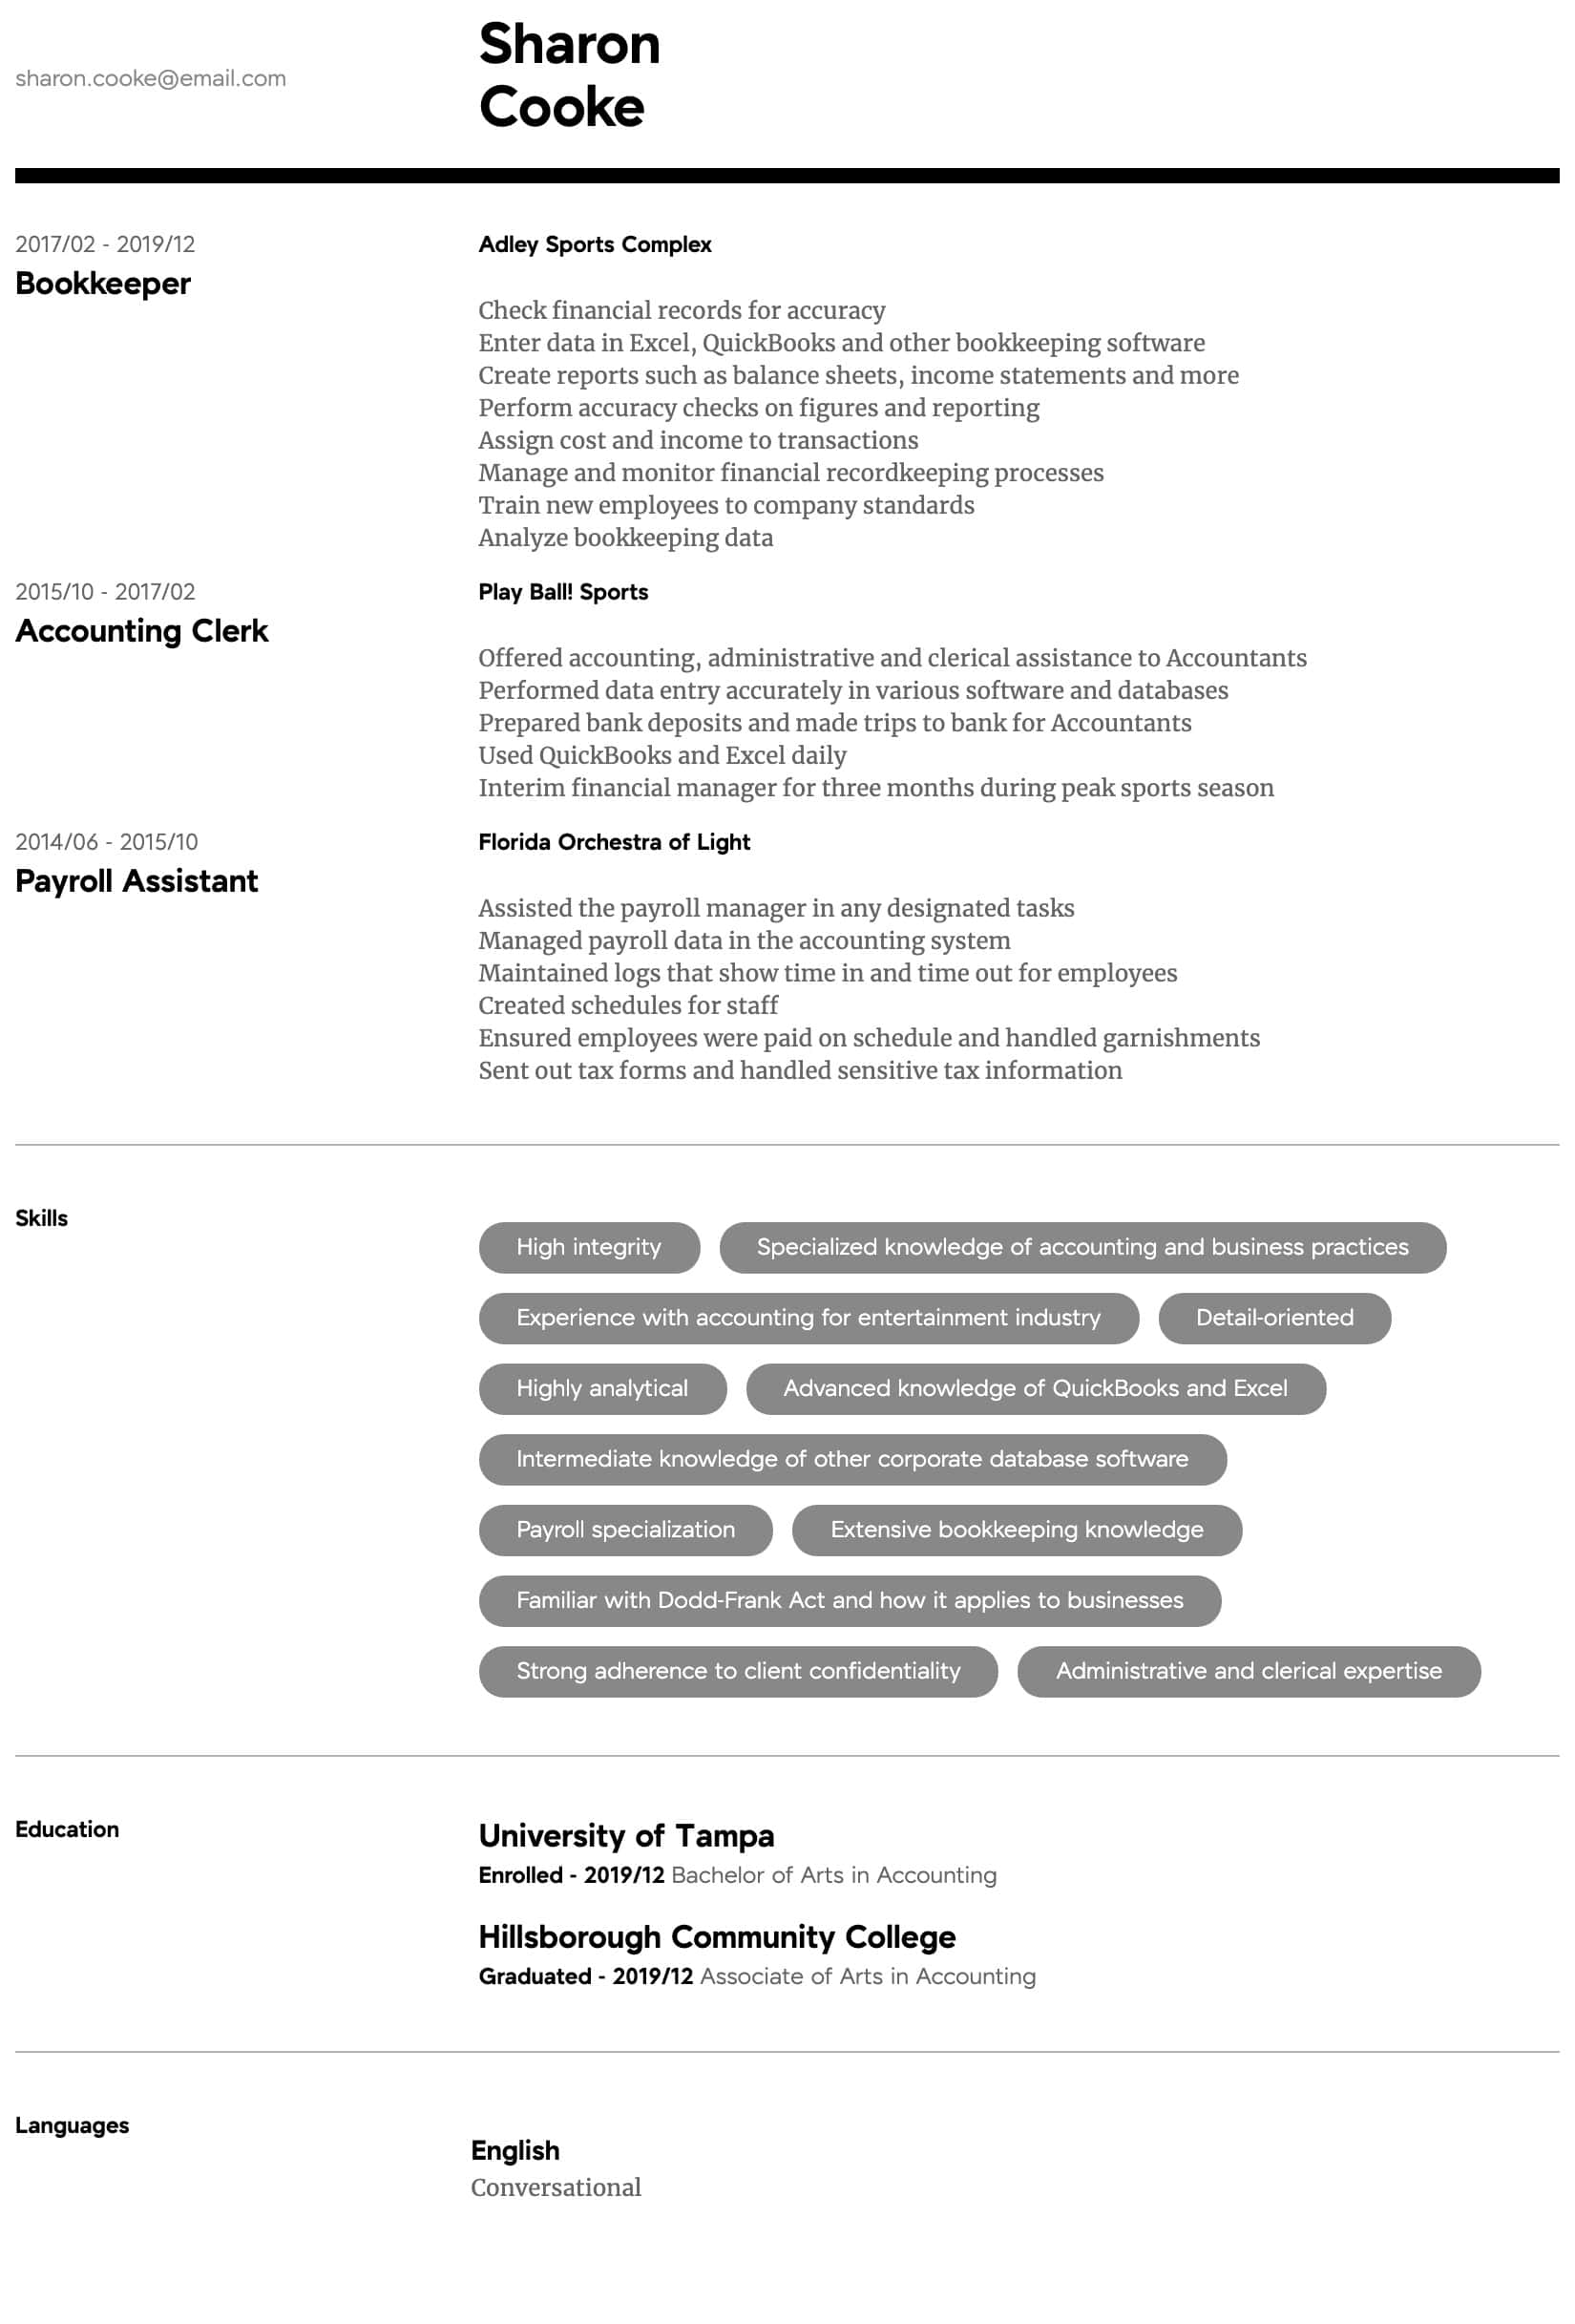 accountant resume samples all experience levels payroll examples intermediate address Resume Payroll Accountant Resume Examples